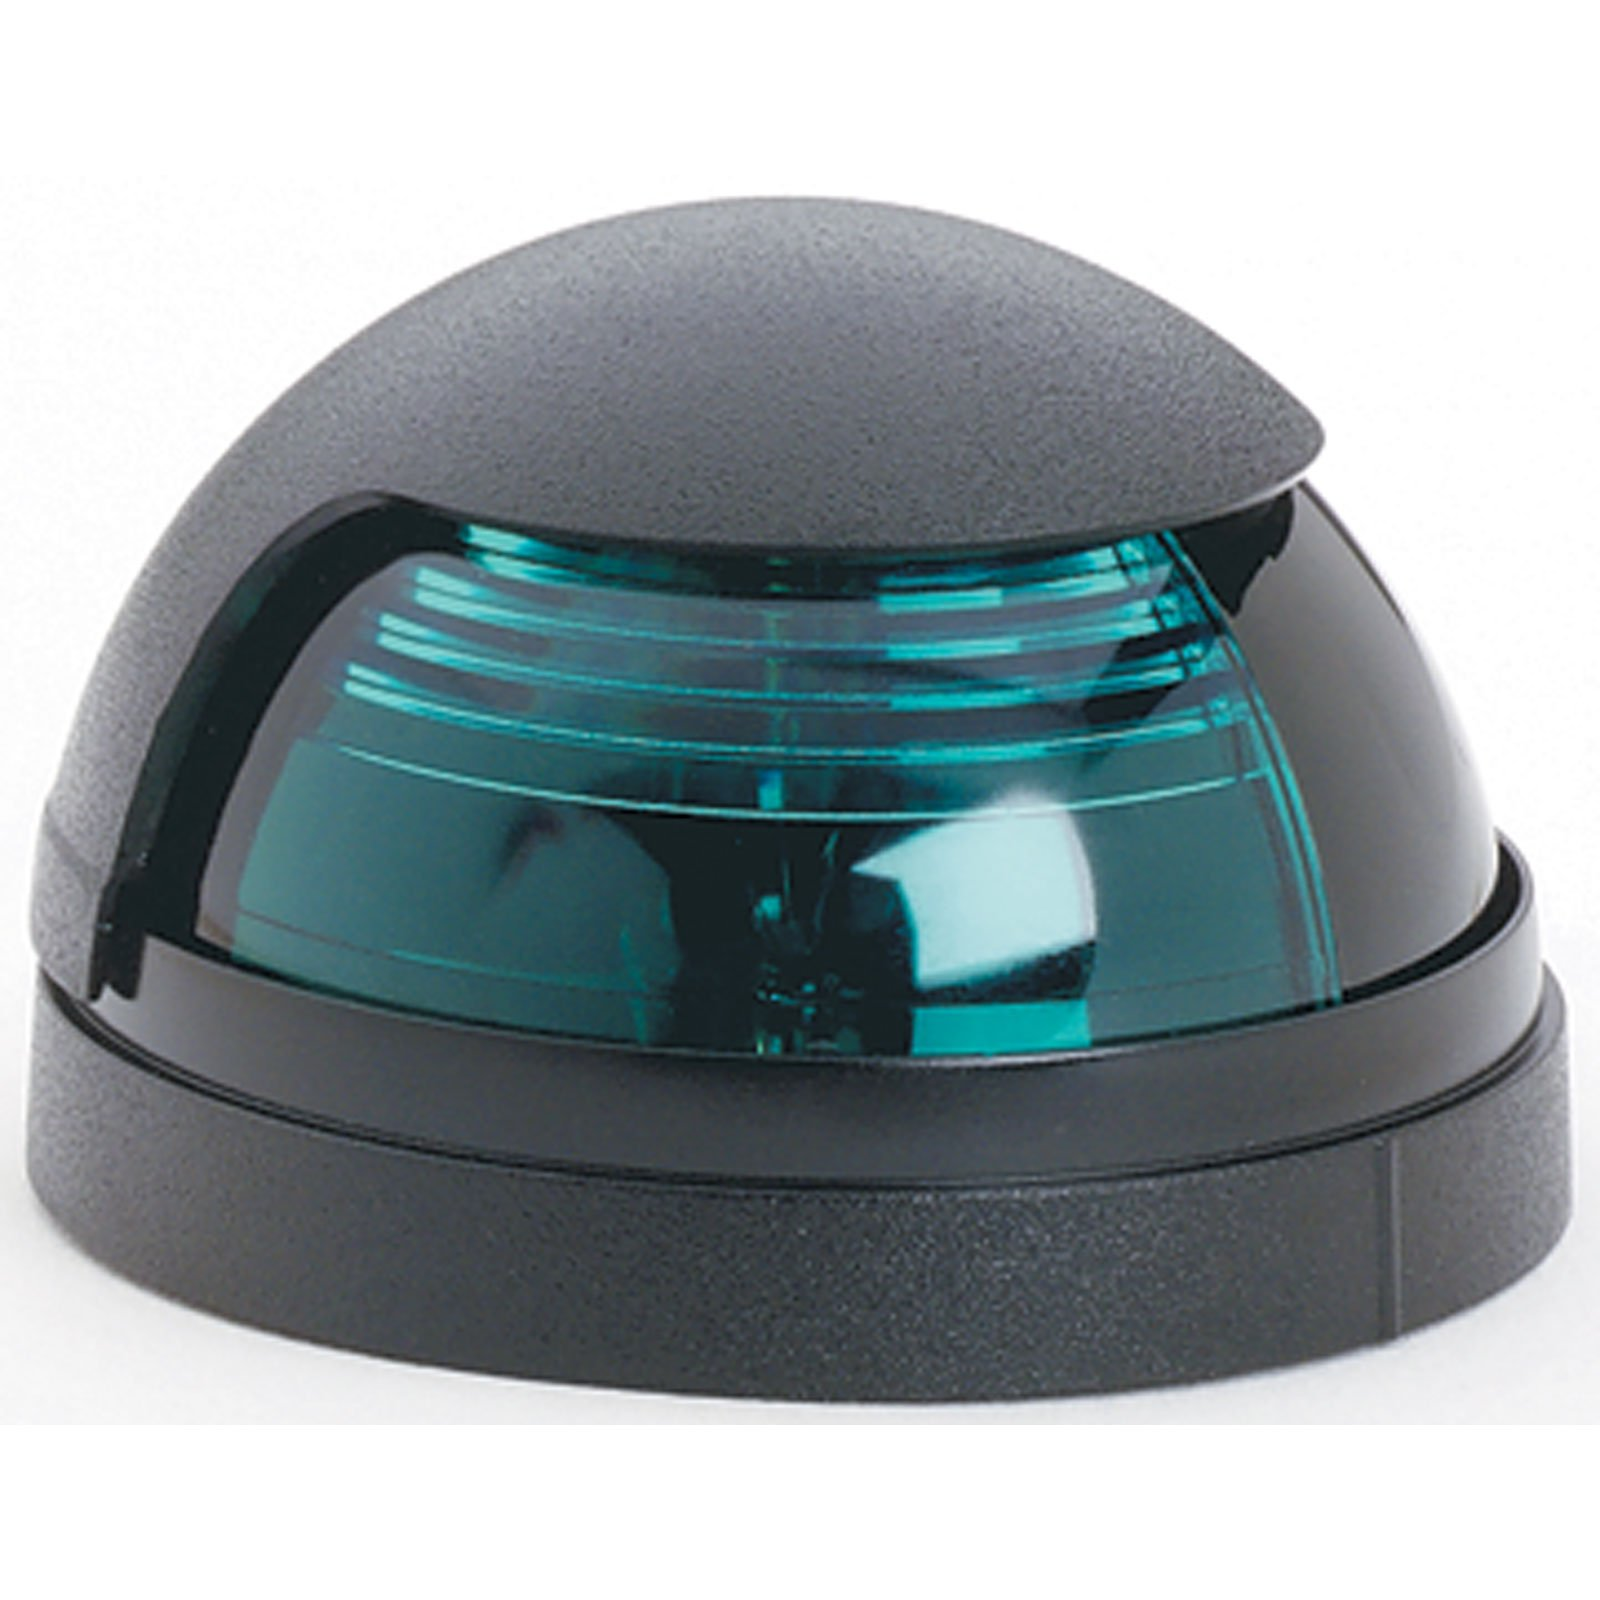 Attwood Black Cover 1-Mile Deck Mount Navigation Bow Light (Starboard/Green Lens) by attwood